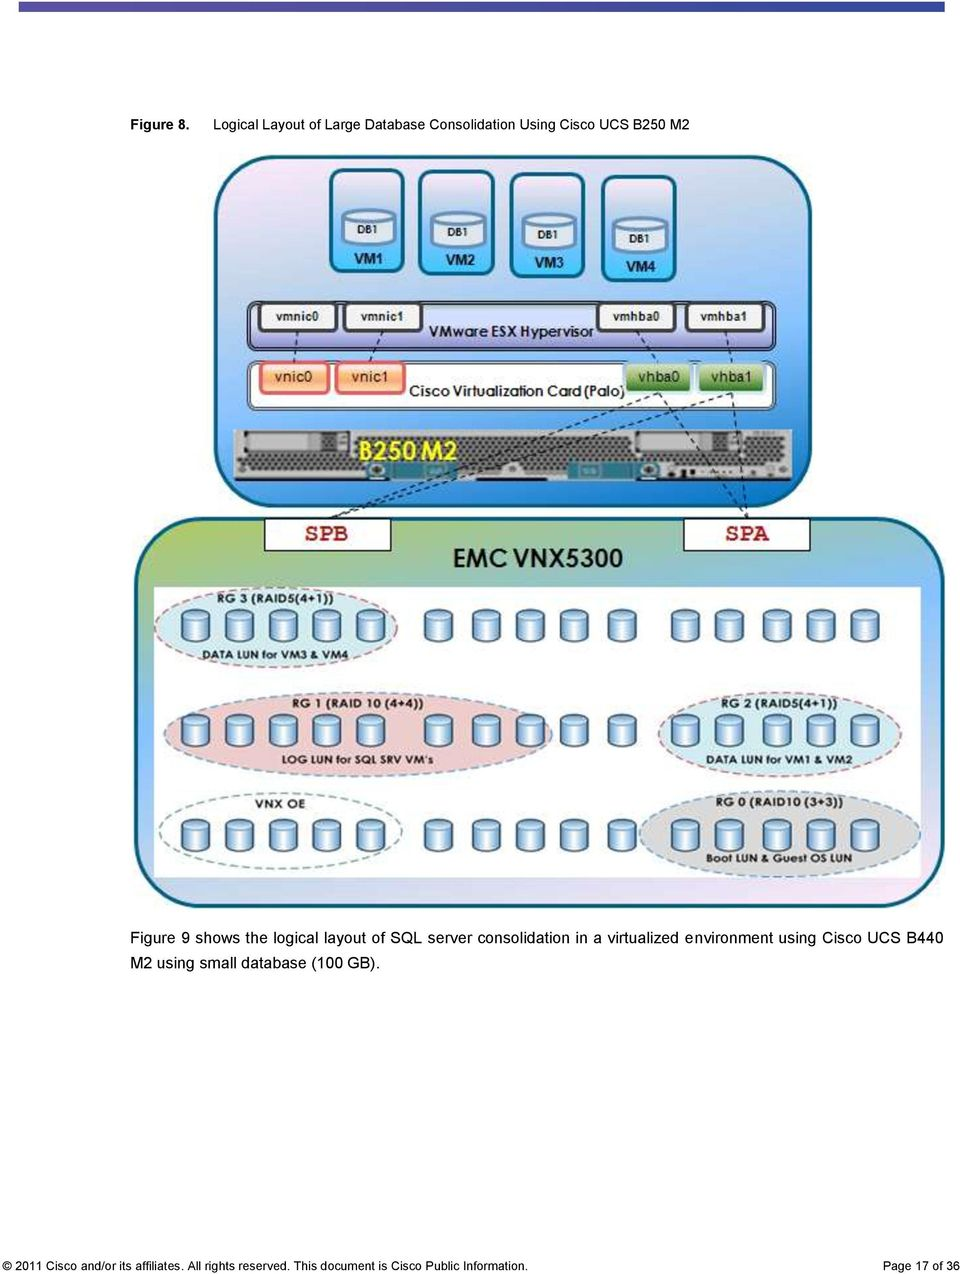 shows the logical layout of SQL server consolidation in a virtualized environment